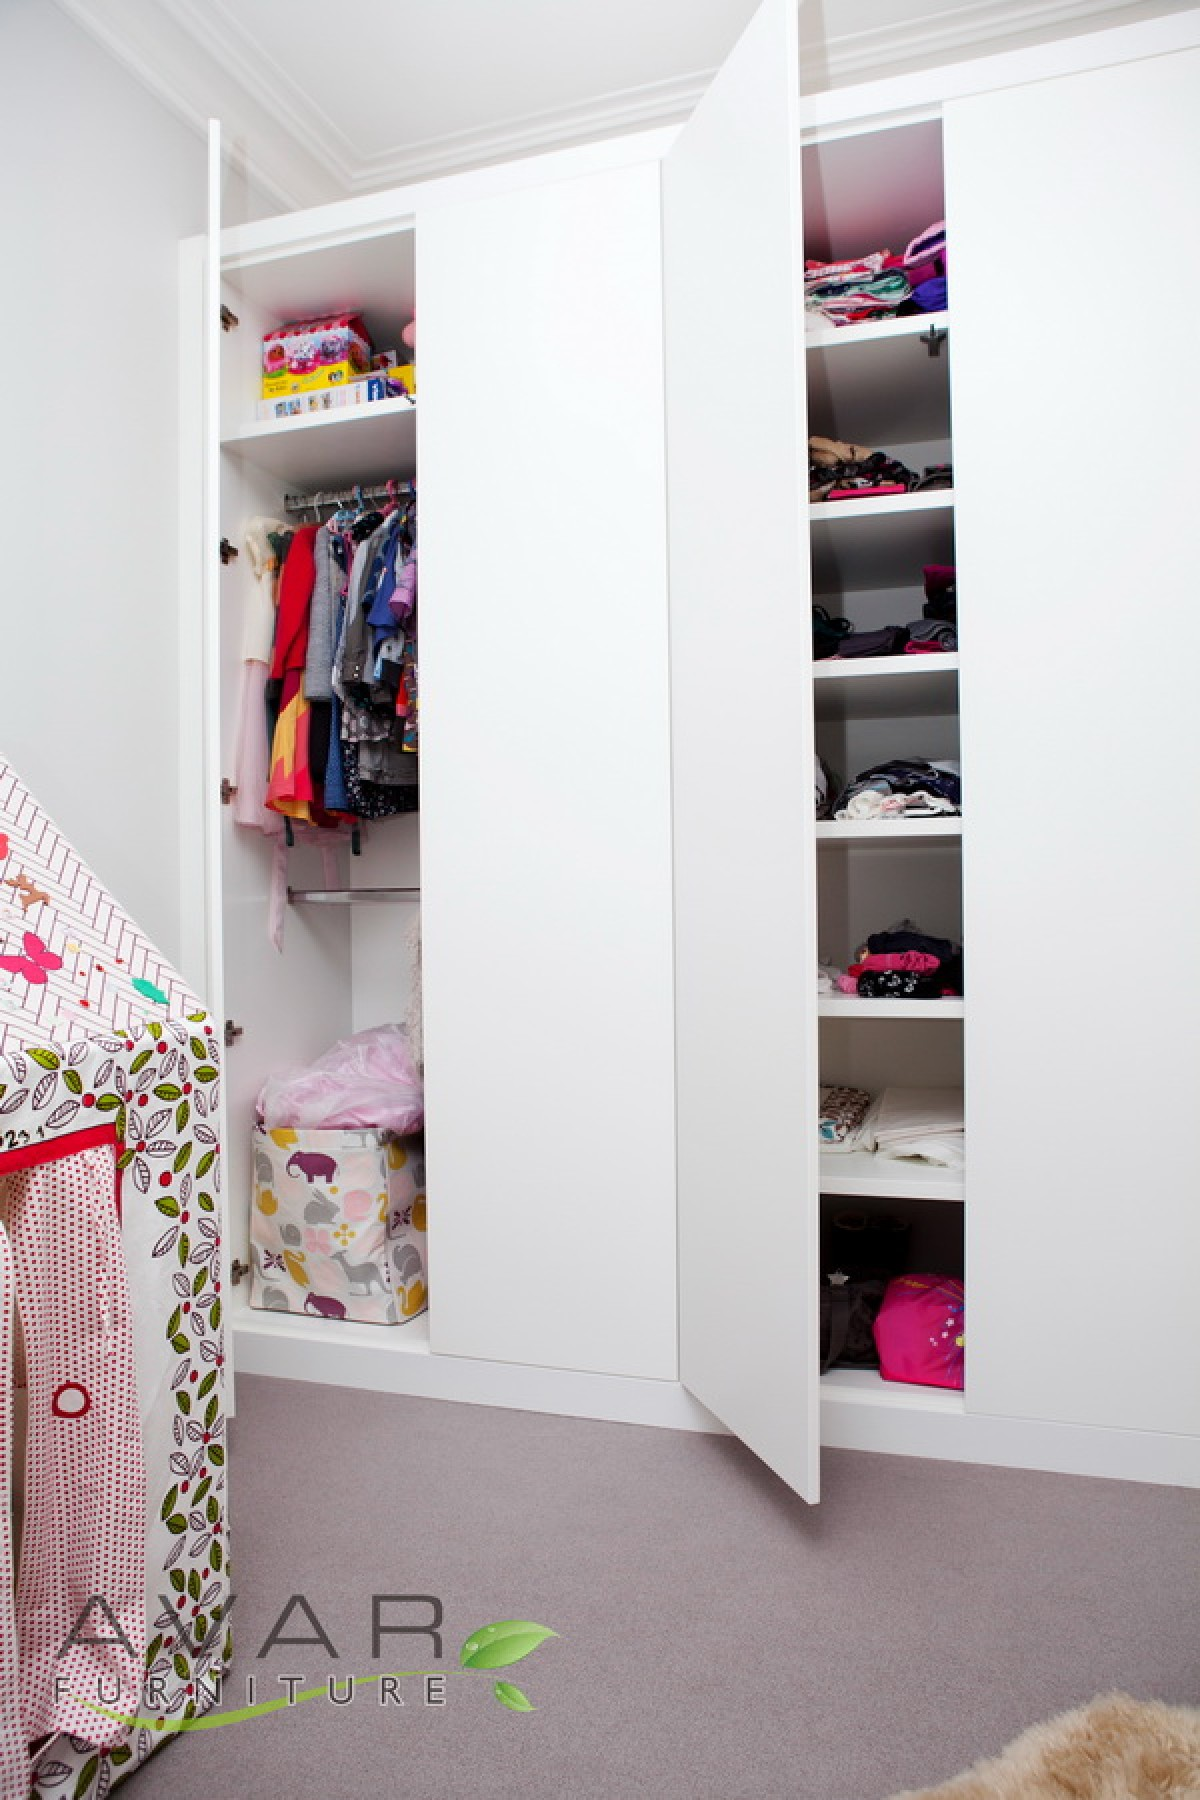 Amazing Fitted Wardrobe Ideas / Gallery 2 1200 x 1800 · 304 kB · jpeg